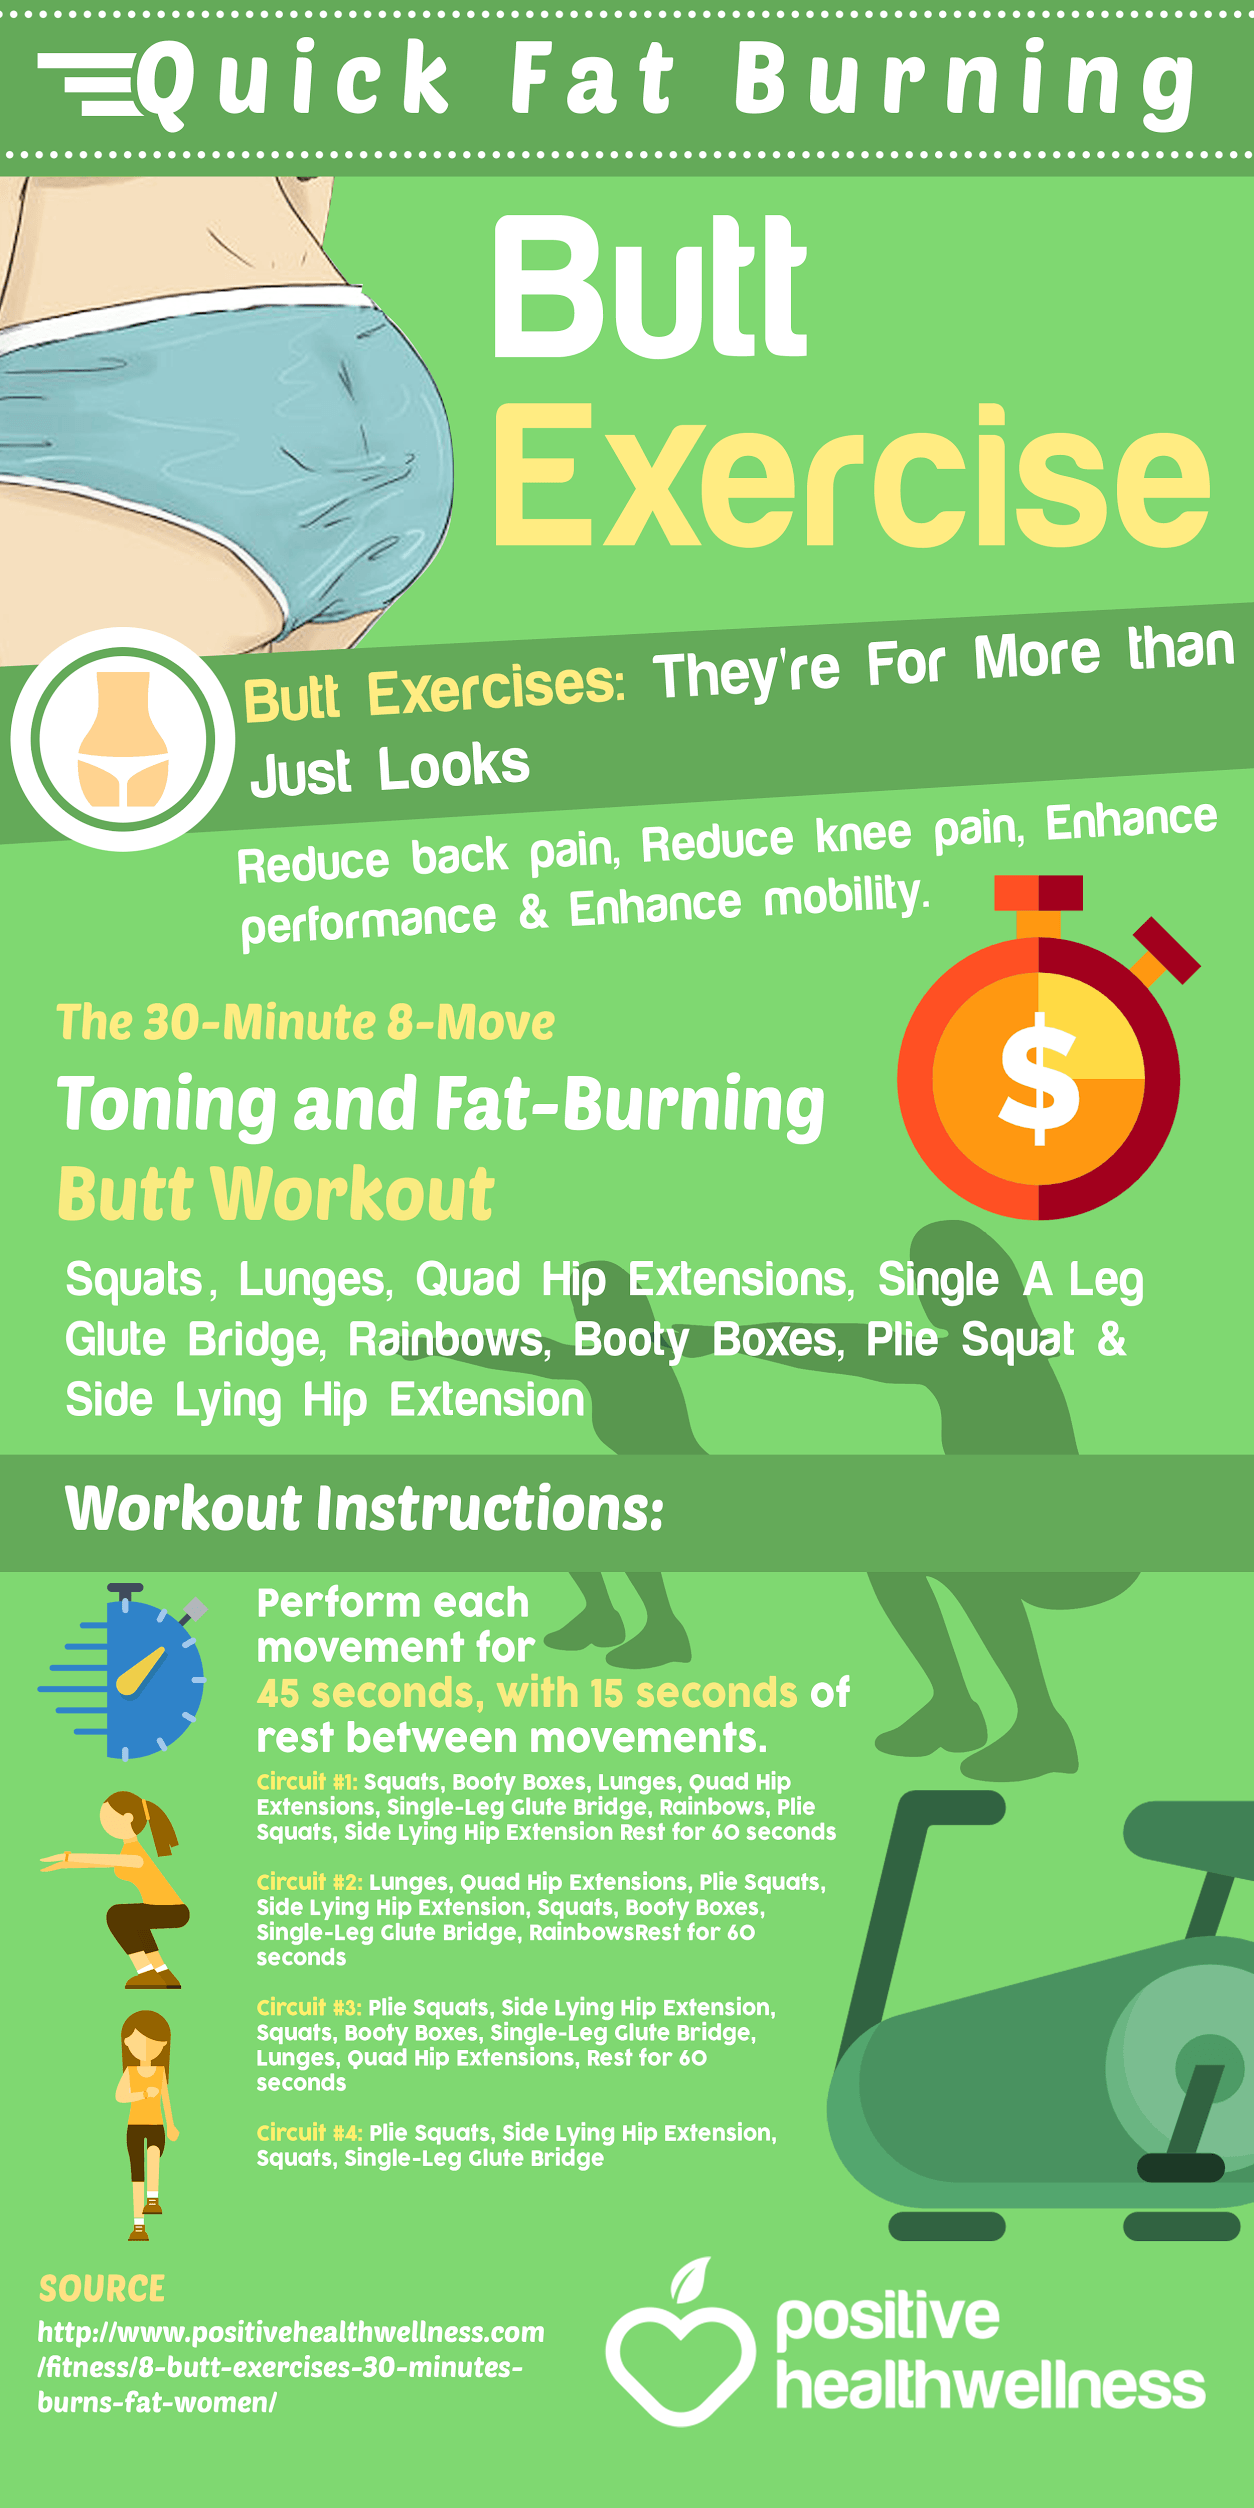 Quick Fat Burning Butt Exercises